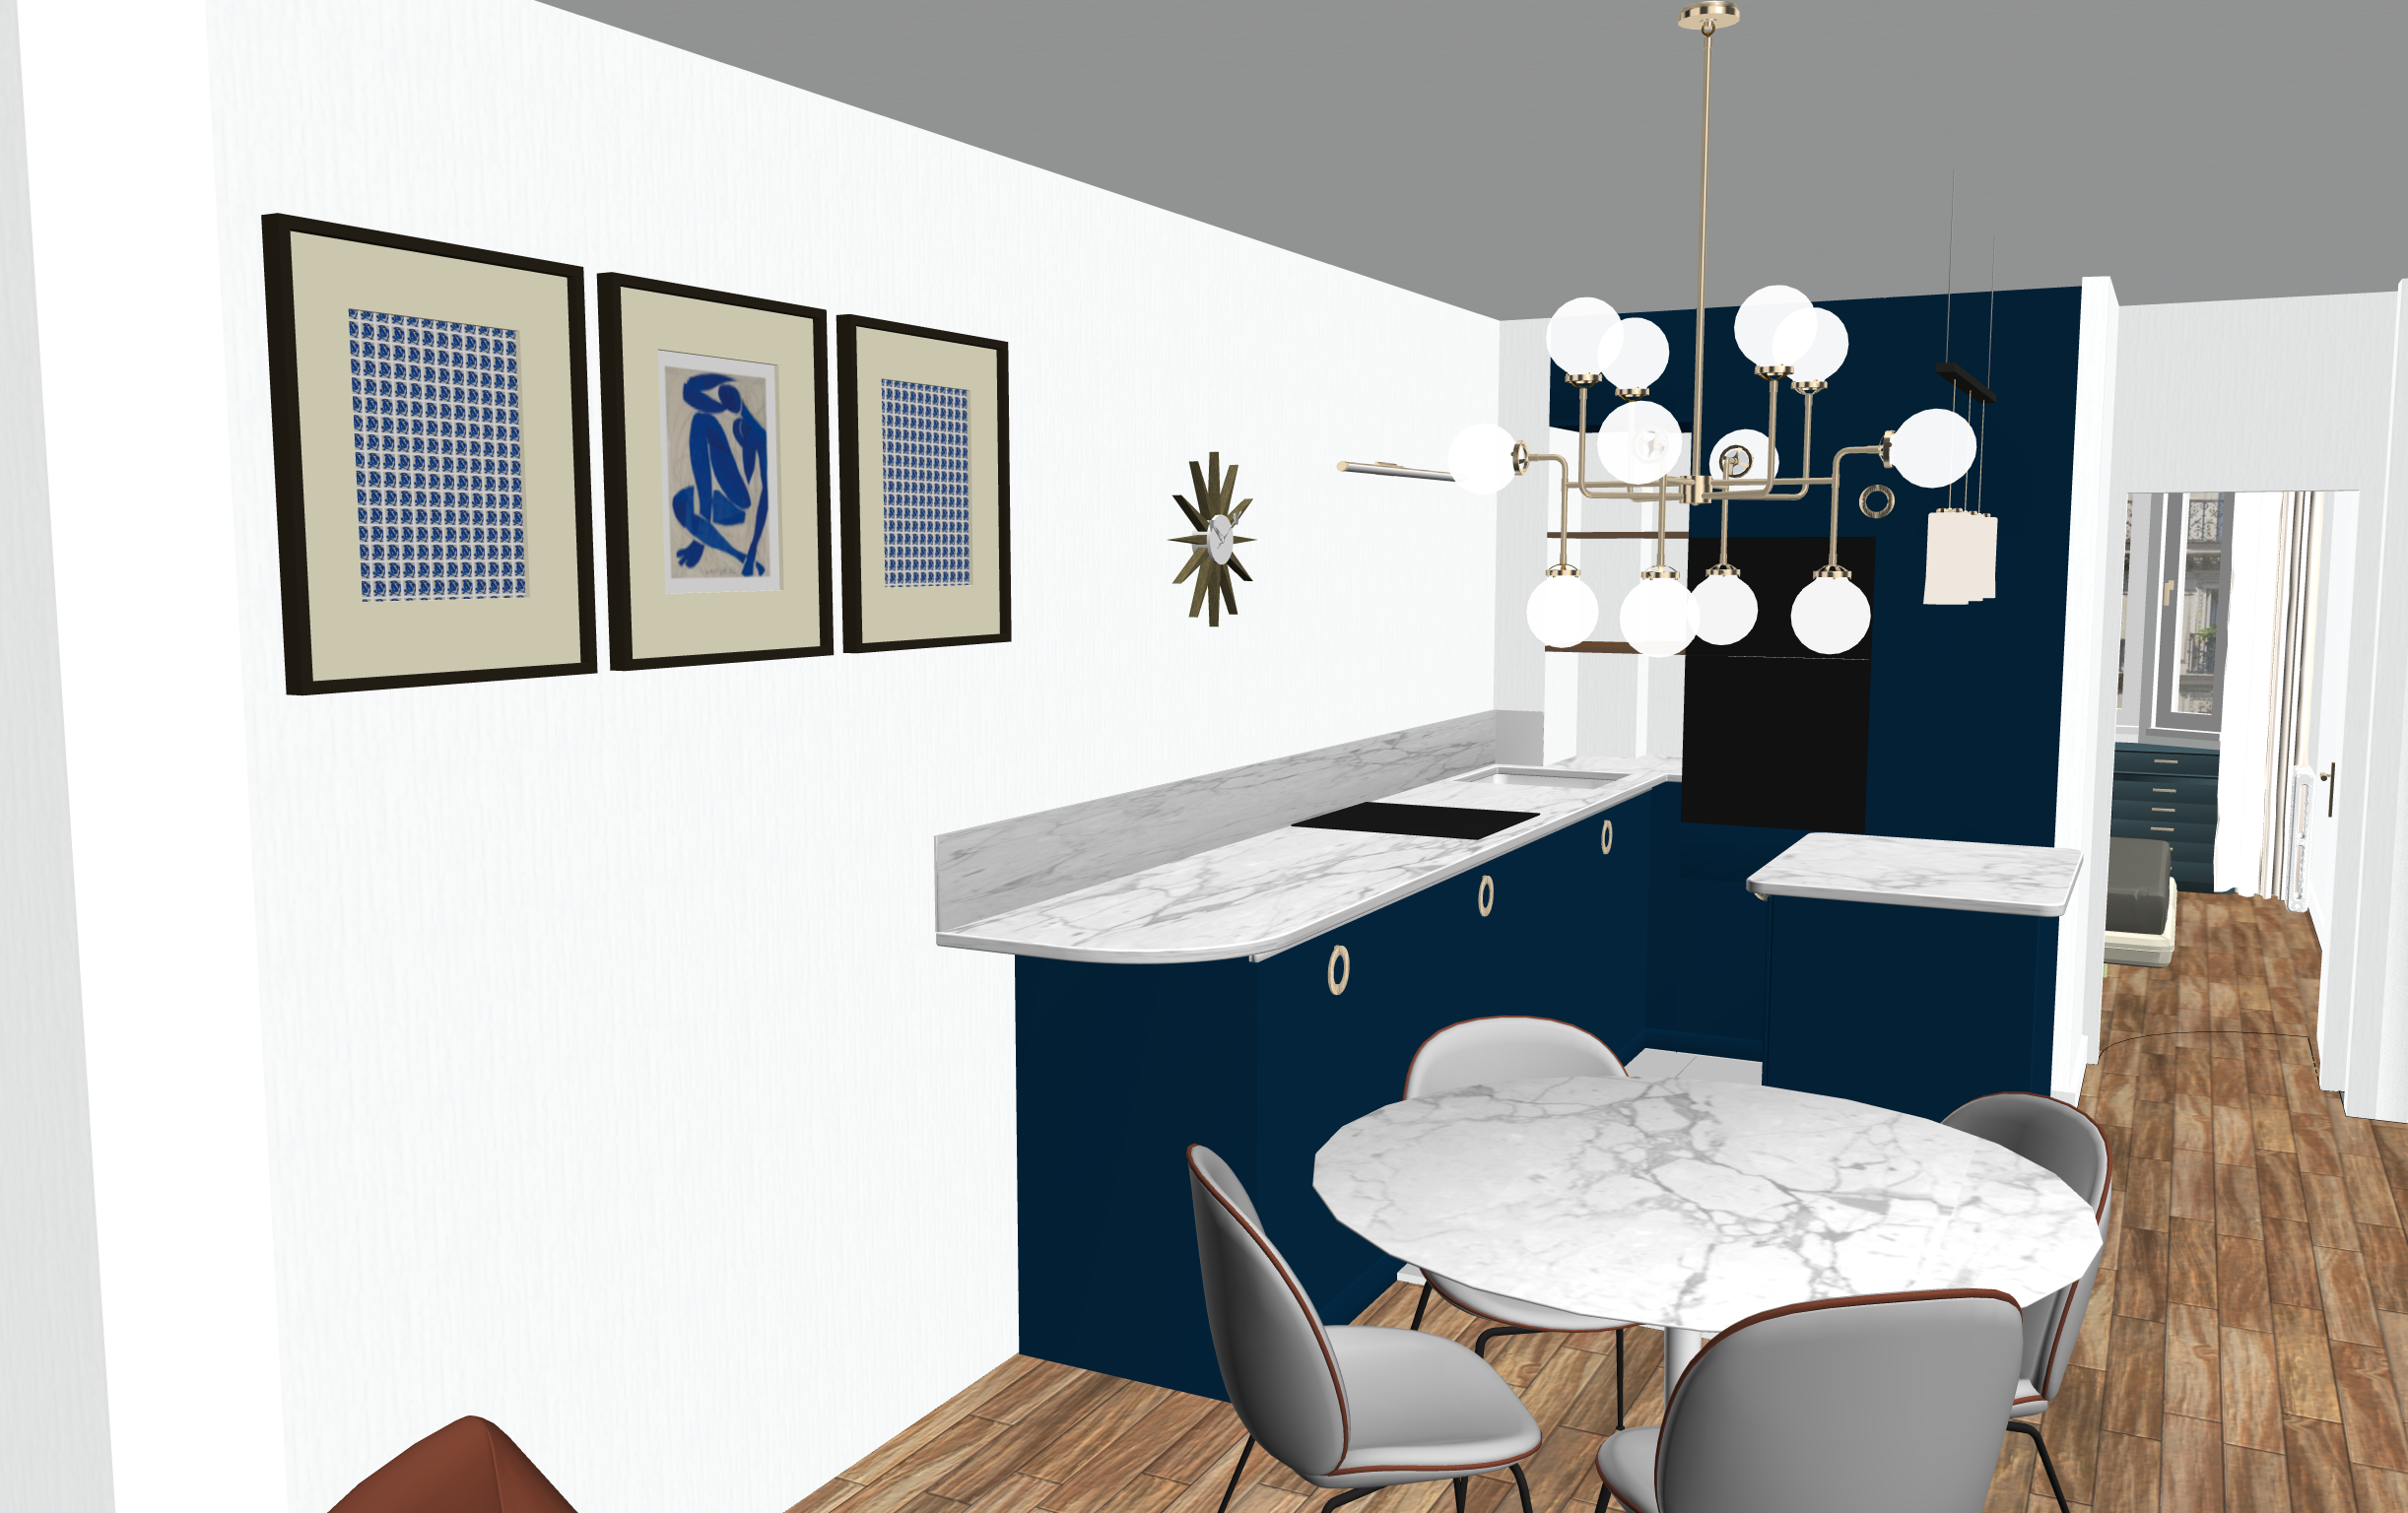 maison_bou_2019_neuilly_3d_5.png